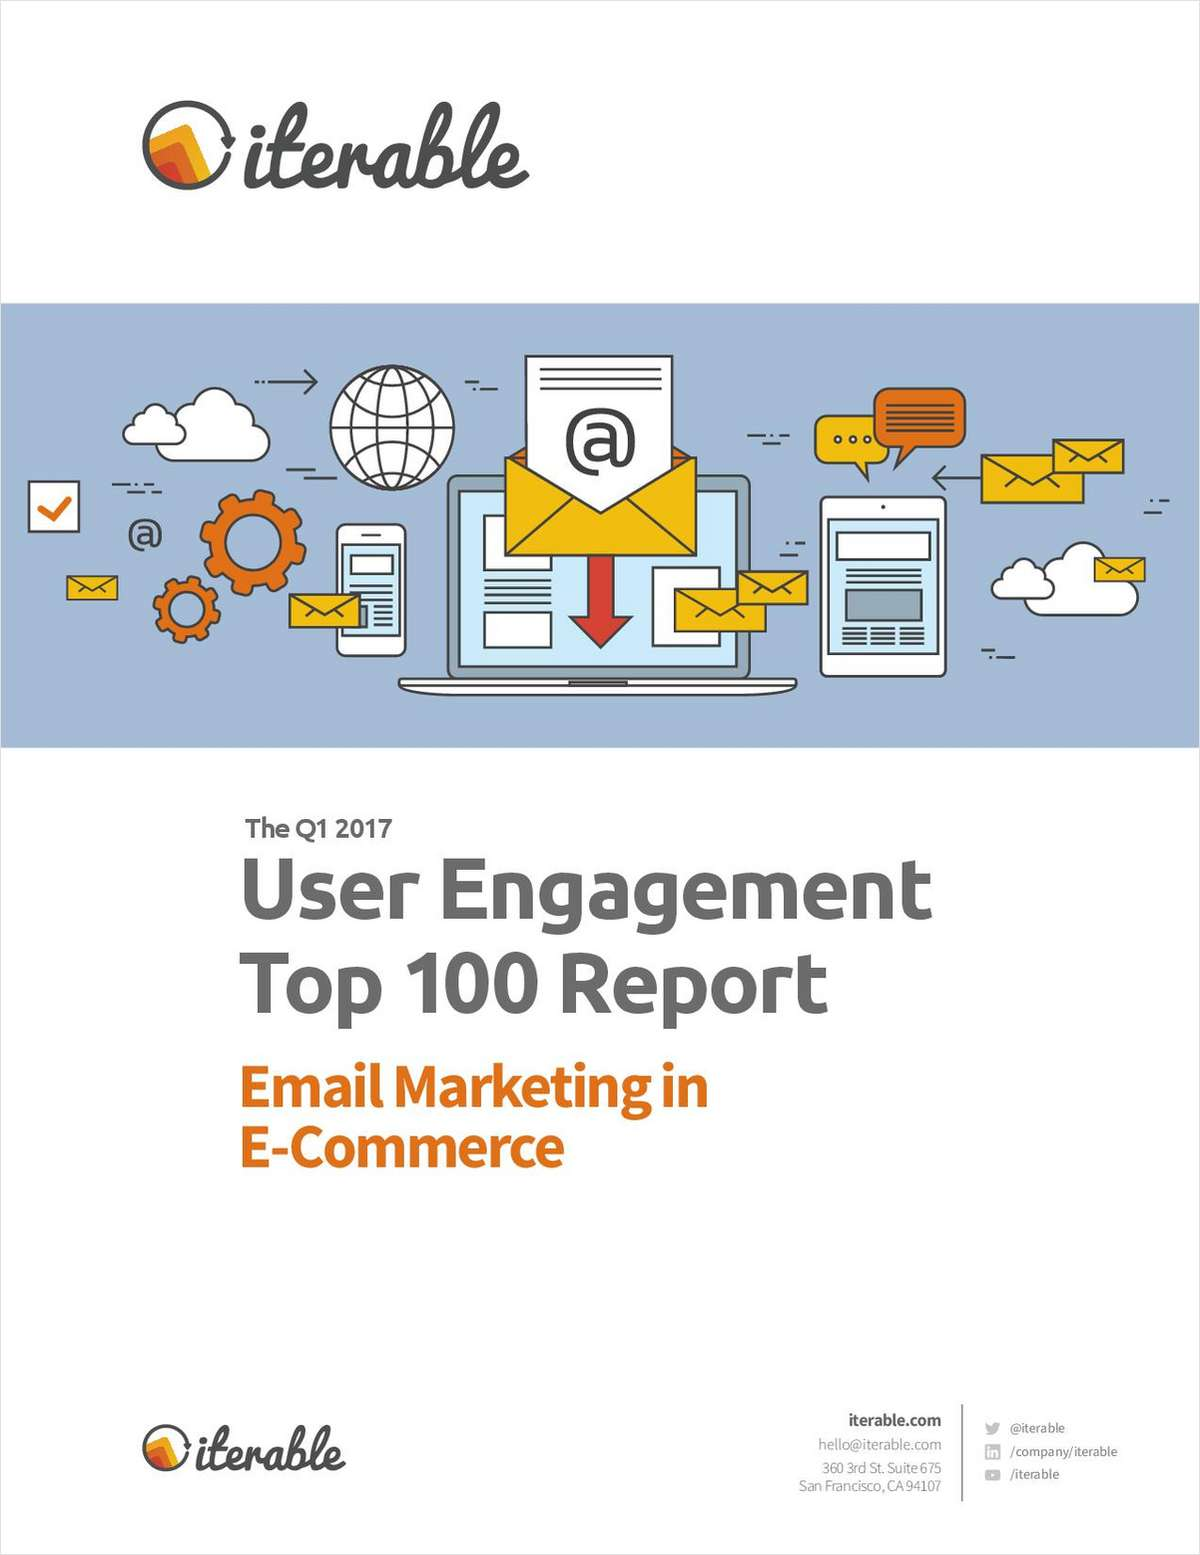 The User Engagement Top 100 Report: Email Marketing in E-Commerce